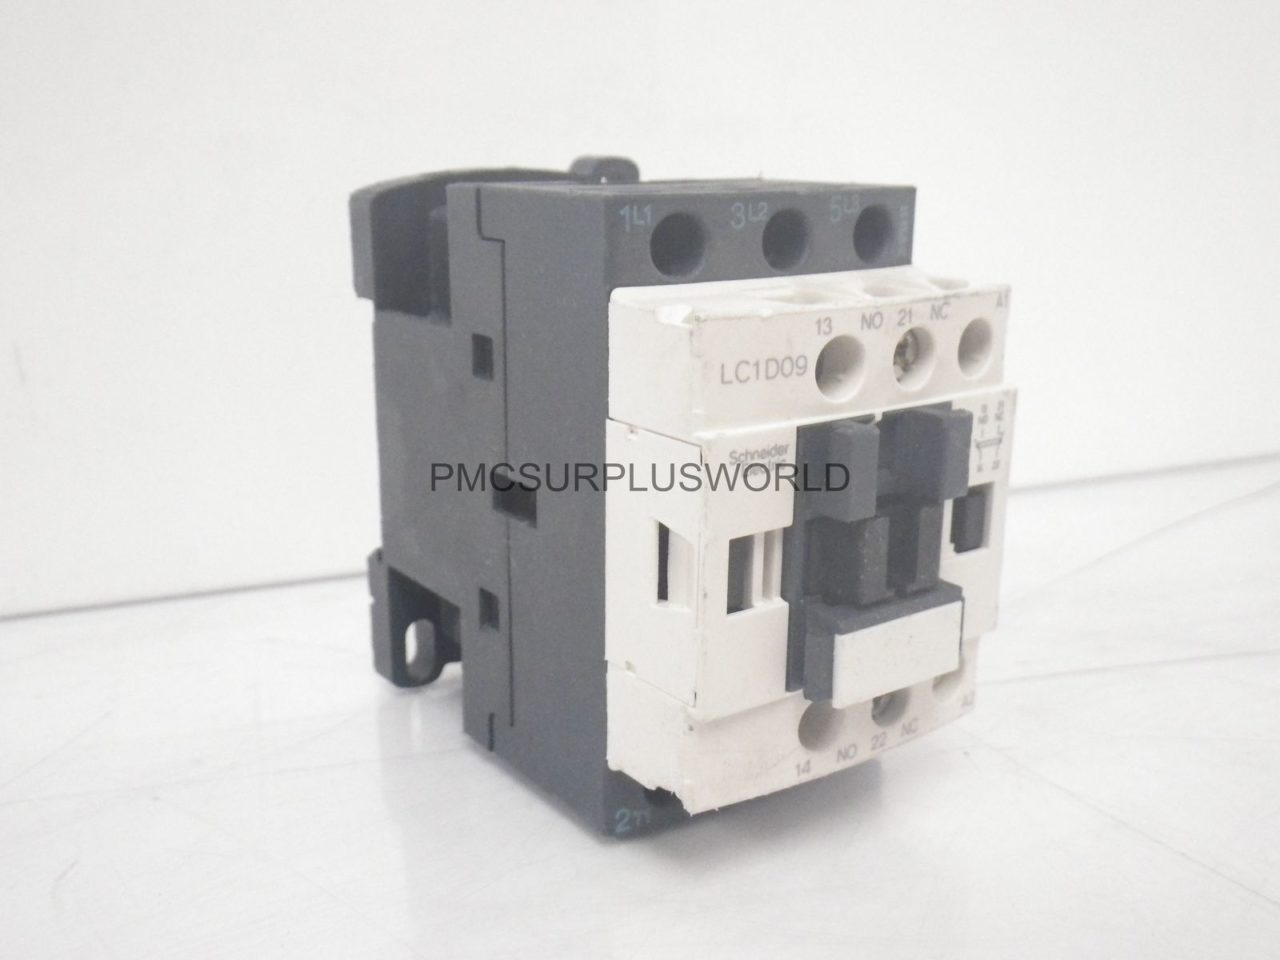 Schneider Barbados Test Details About Lcd1d09 Schneider Electric Conctator 25a 220v 50 60hz Used And Tested